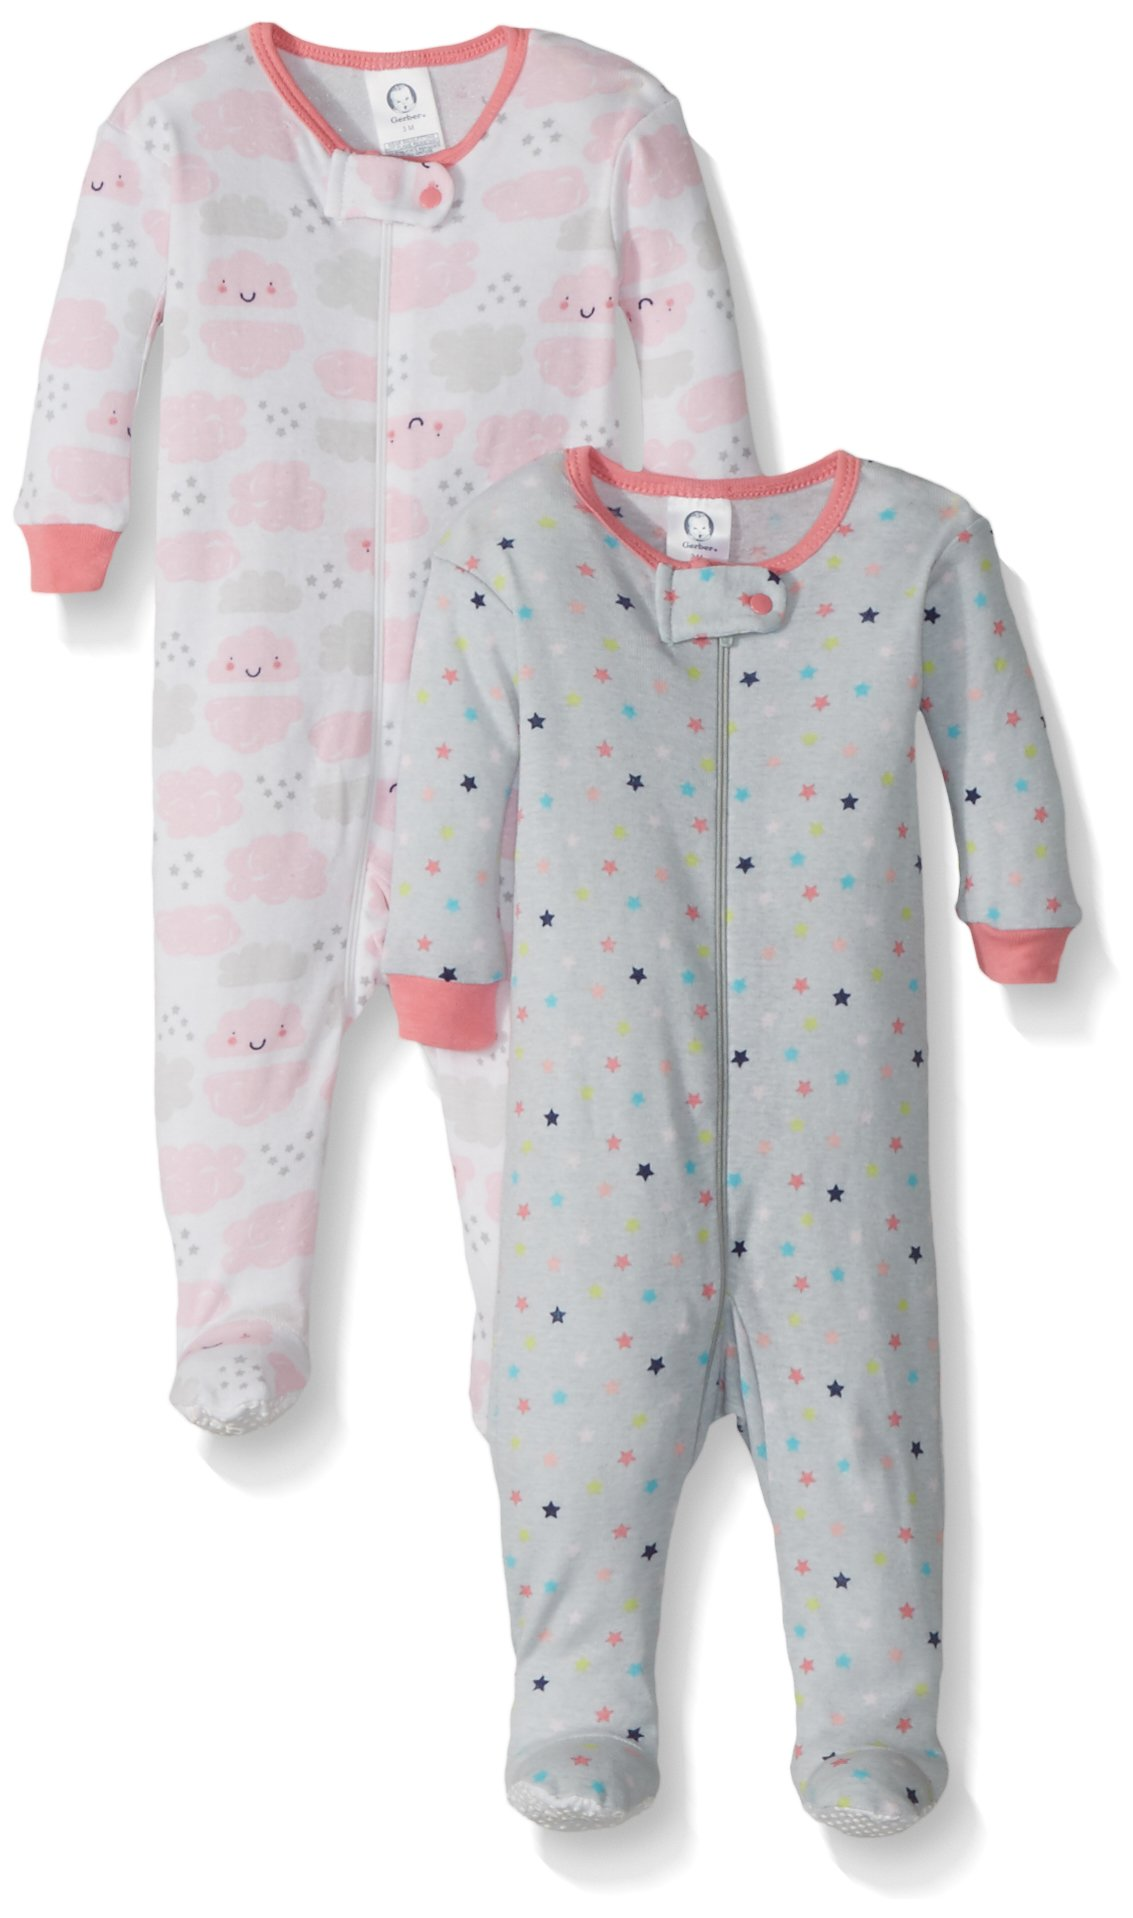 Gerber Baby Girls 2 Pack Footed Sleeper, Stars/Clouds, 12 Months